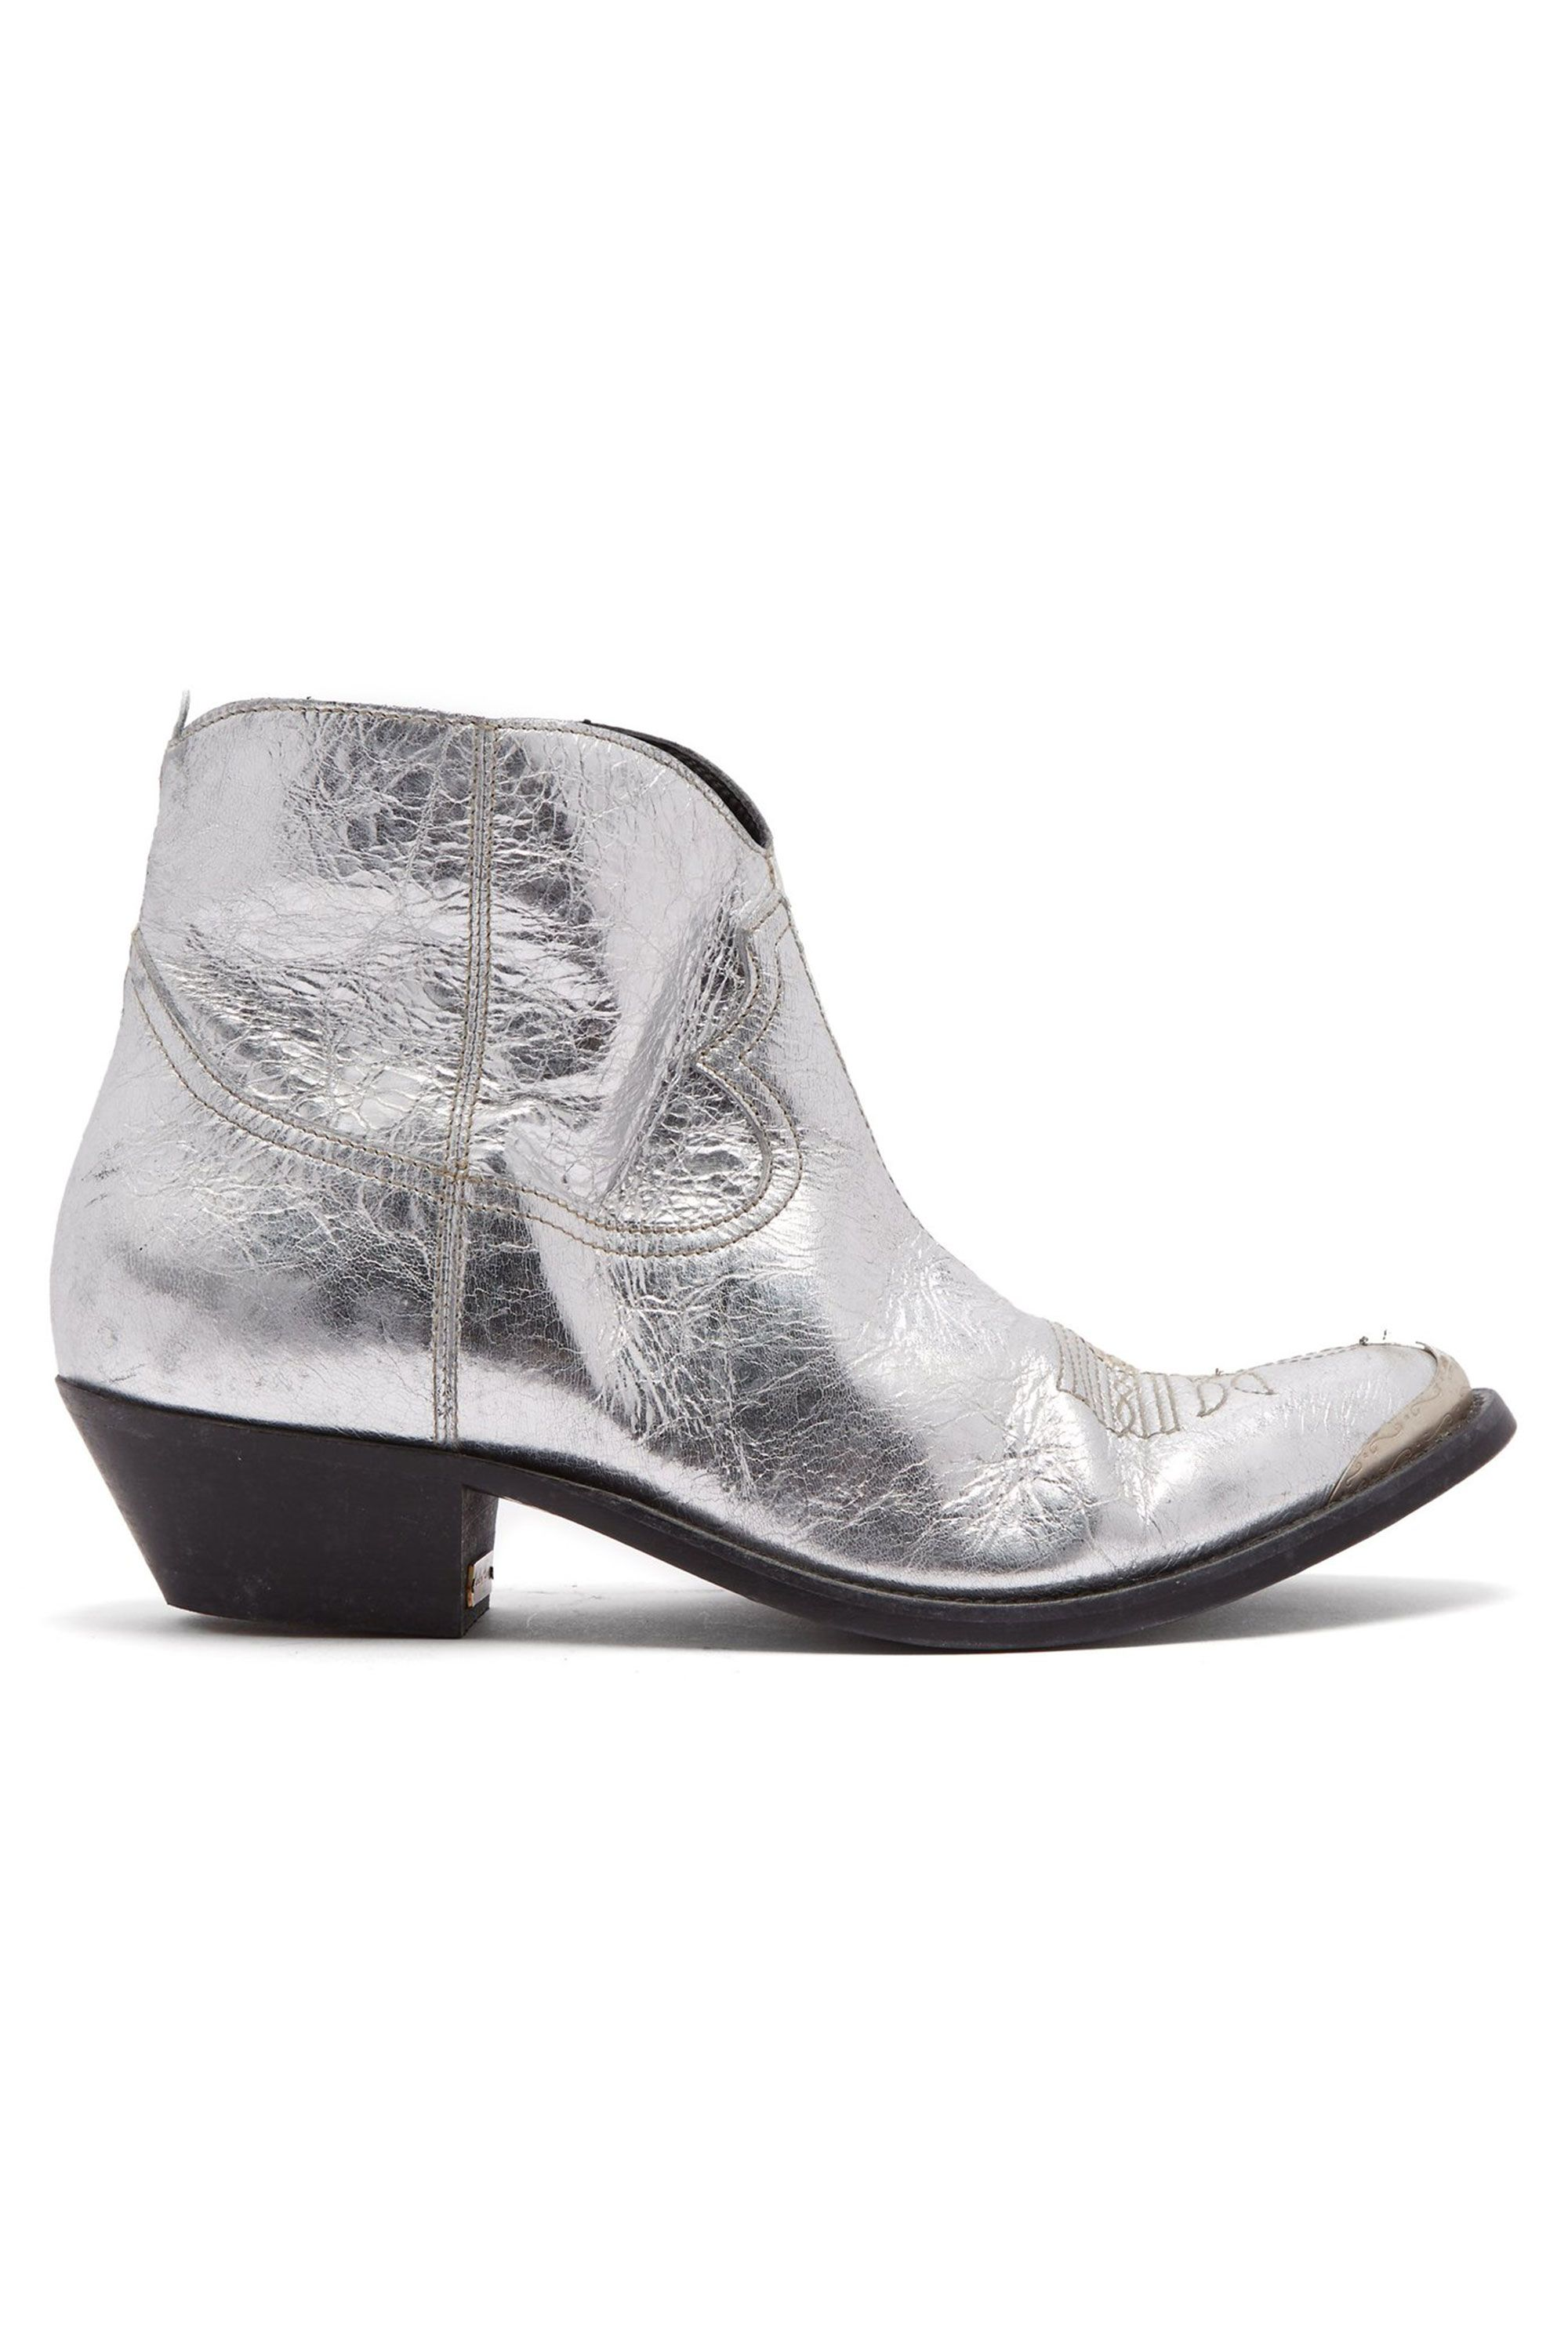 346083d691d Best cowboy boots to buy for AW18 – Cowboy boot trend